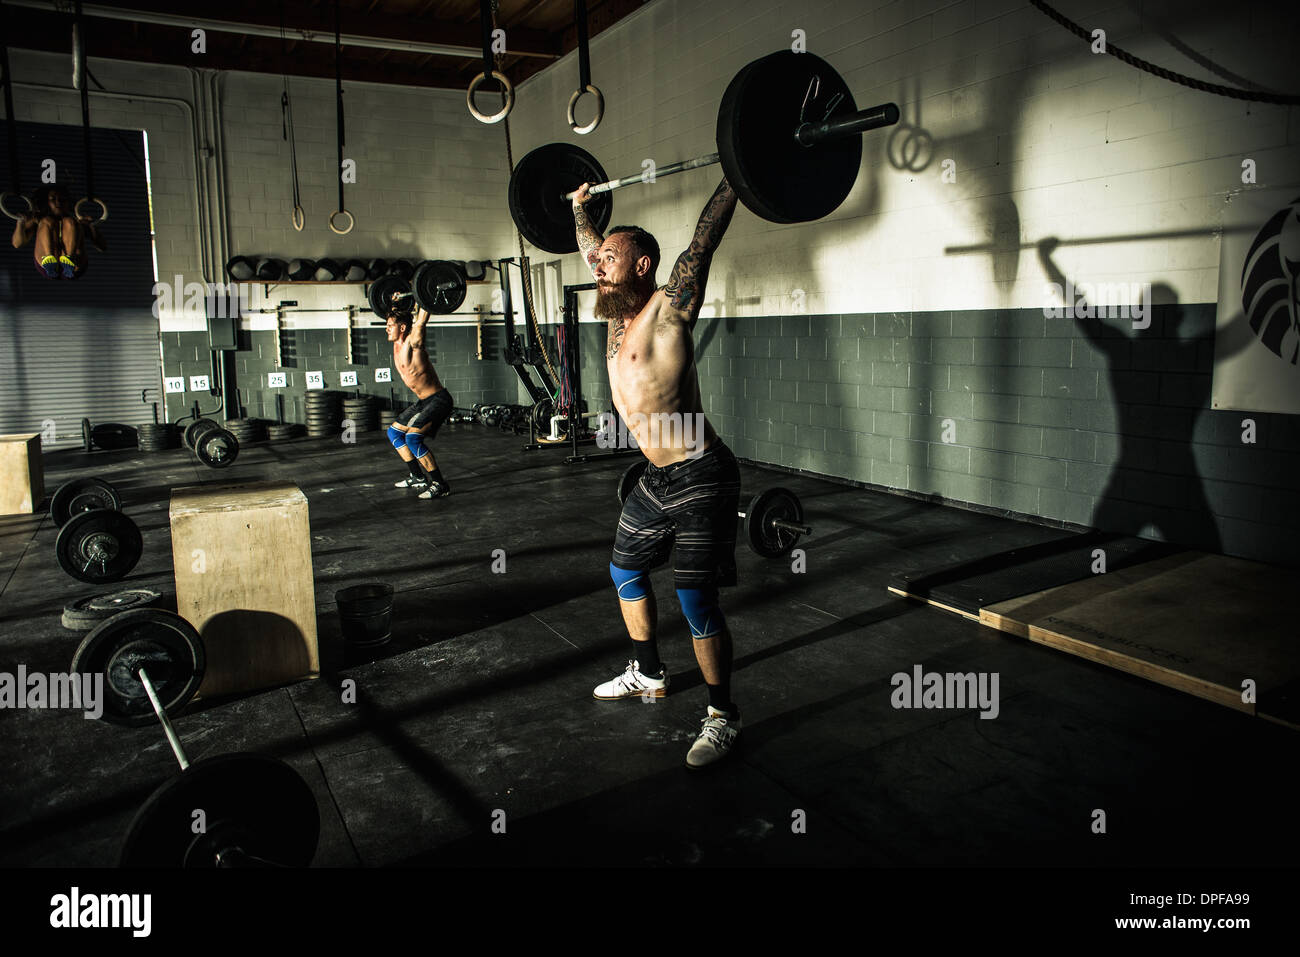 Two men lifting barbels in gymnasium - Stock Image